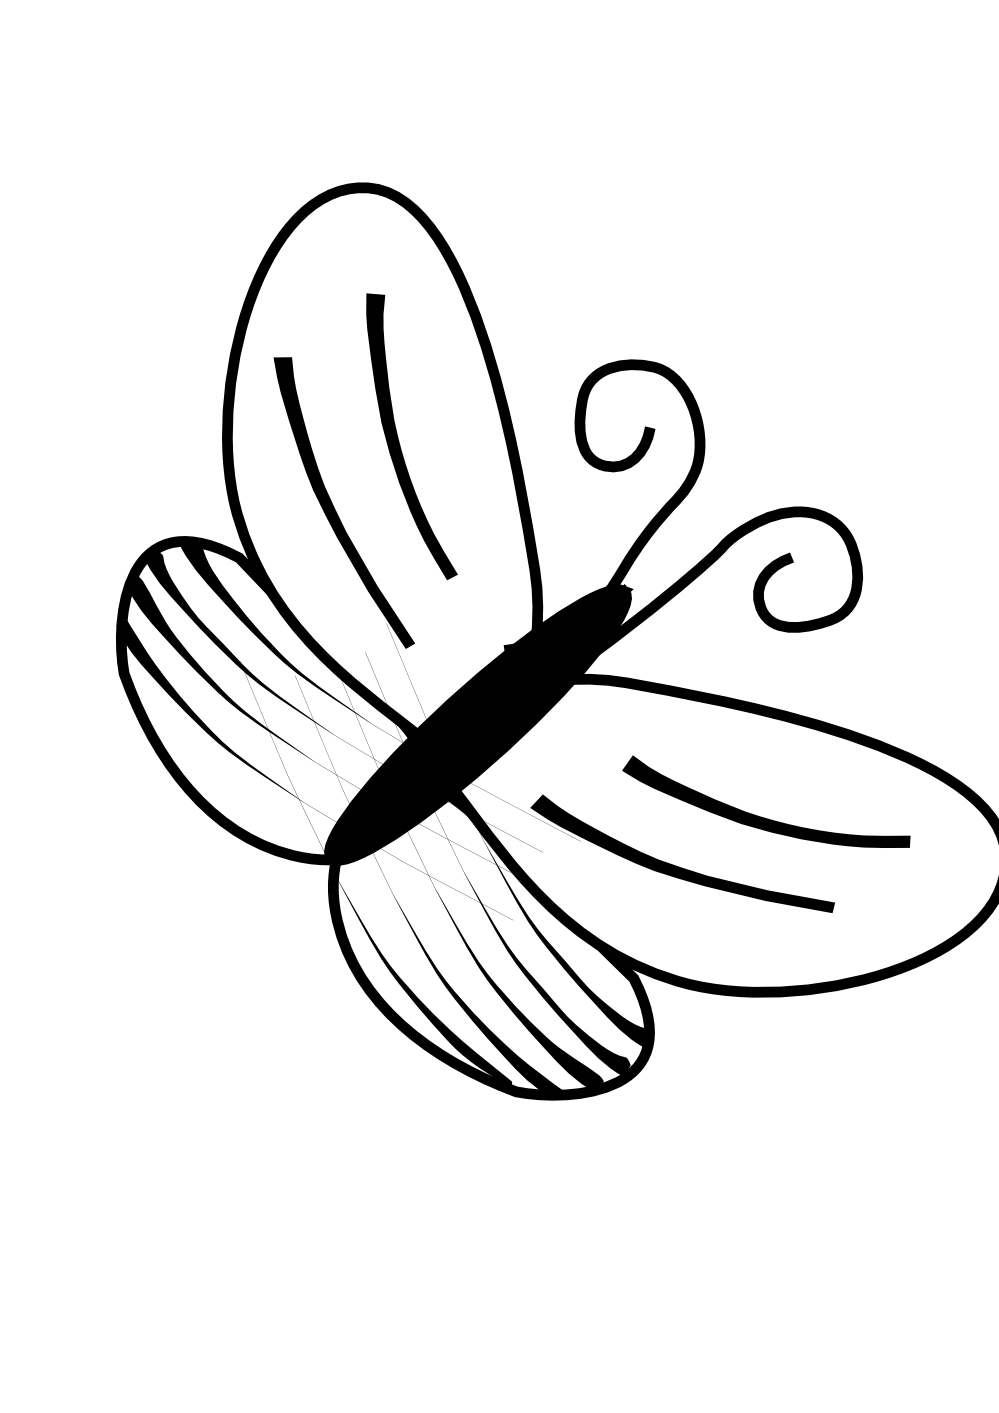 Black And White Flower Images Free Download Best Black And White